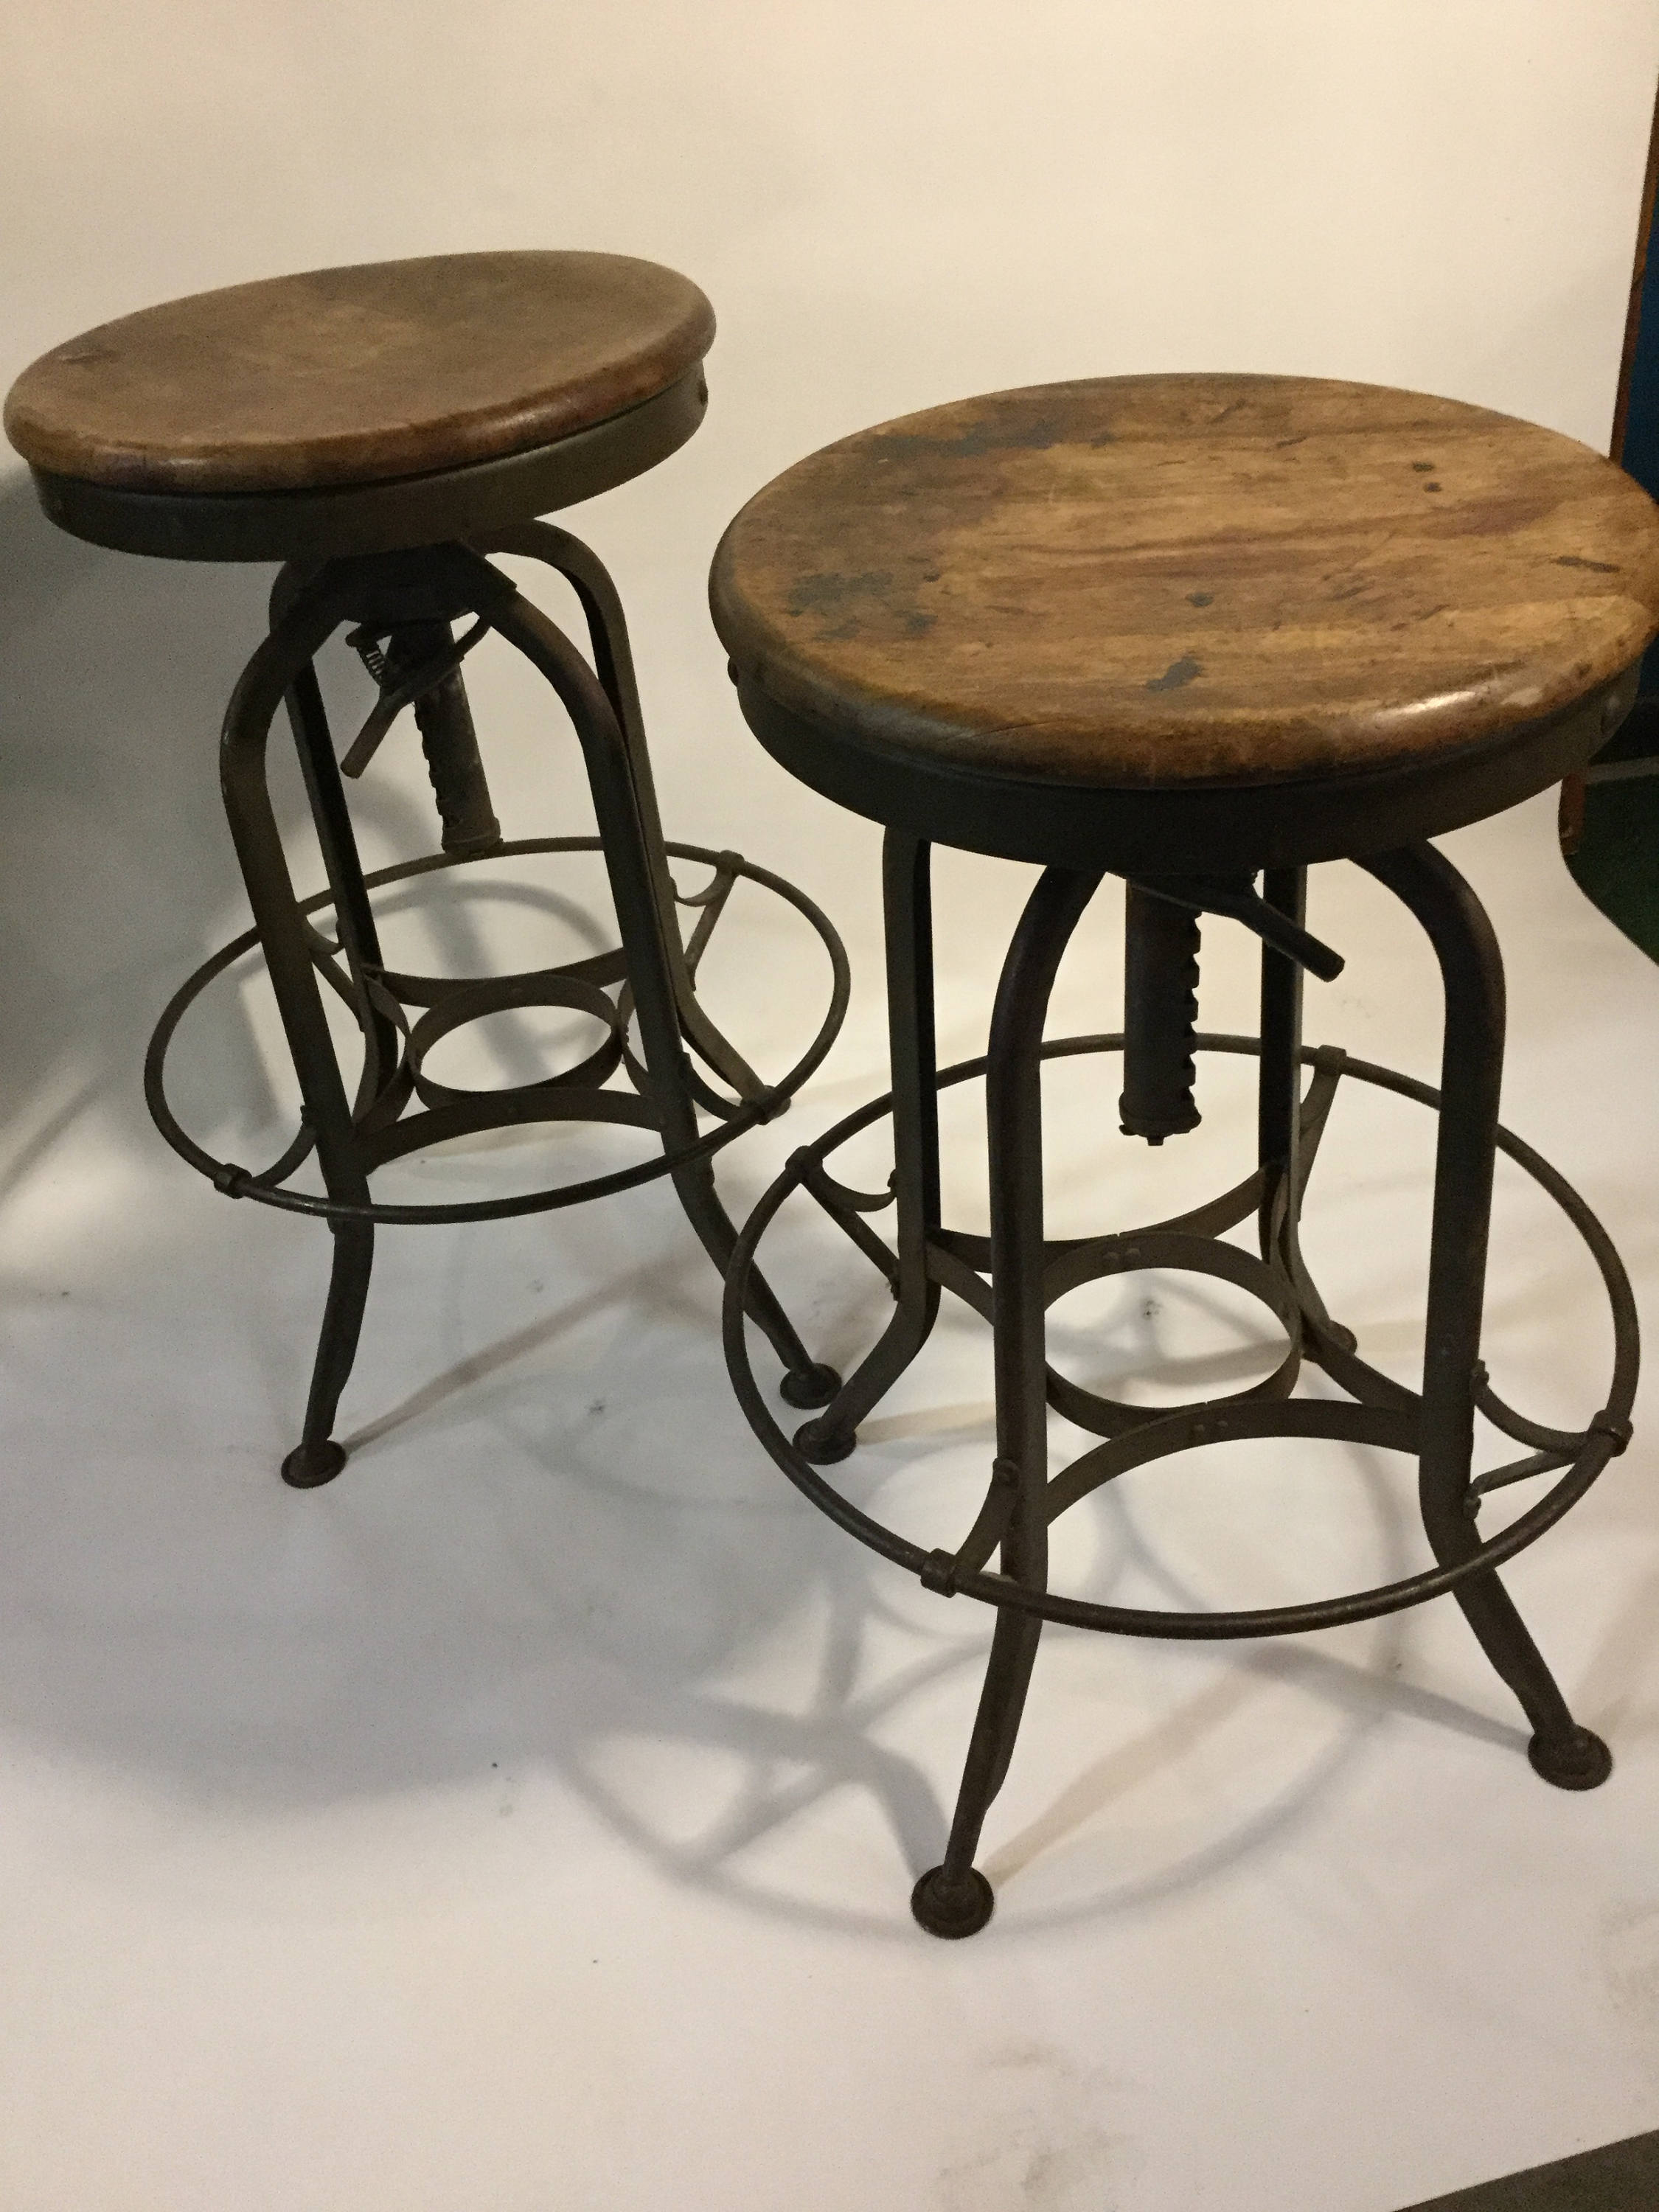 Attirant 1950s Toledo Metal Furniture Co. Maple/Steel Adjustable Pair Of Industrial  Stools From The US Mint In PA.